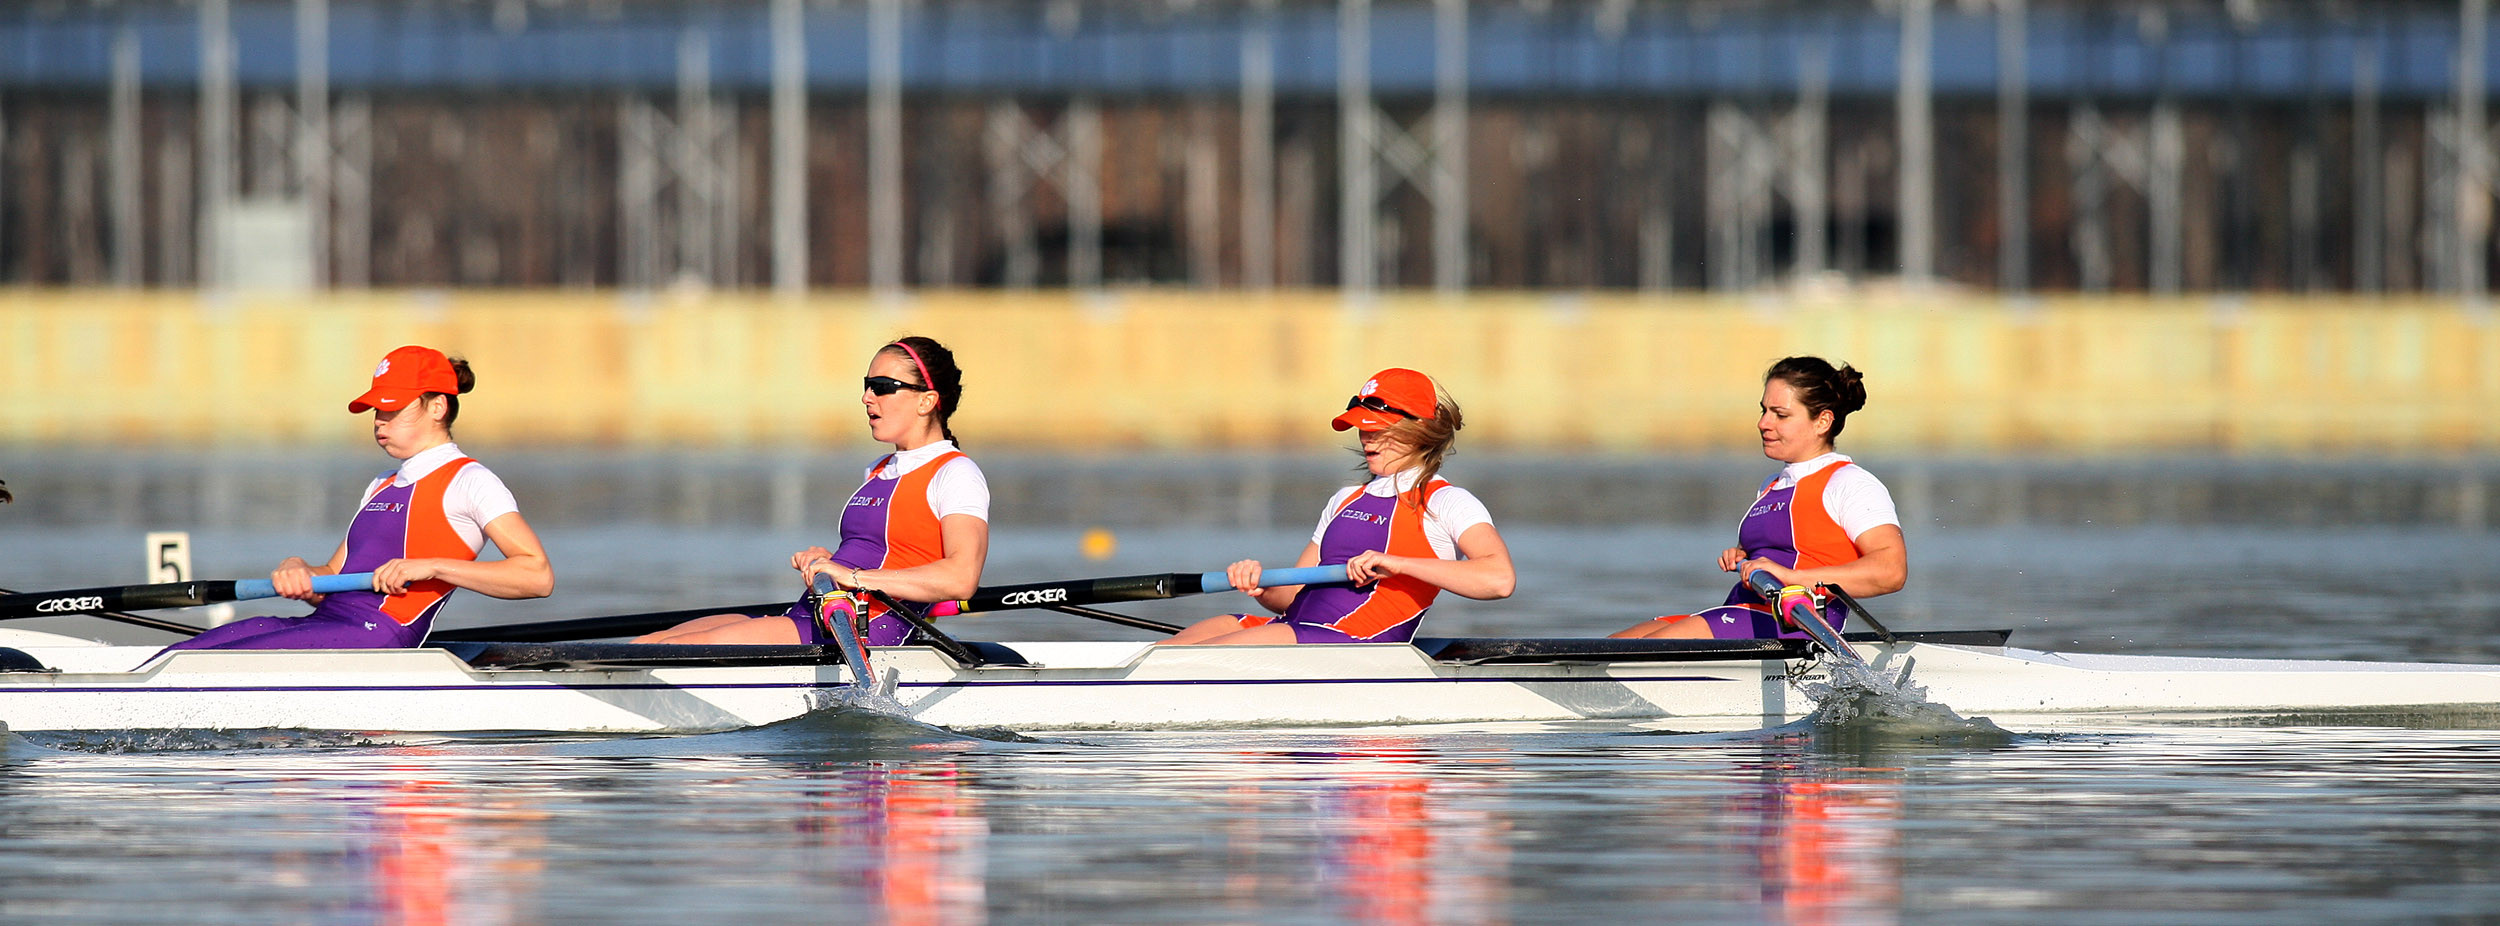 Basadonna to Compete in World Rowing Championships